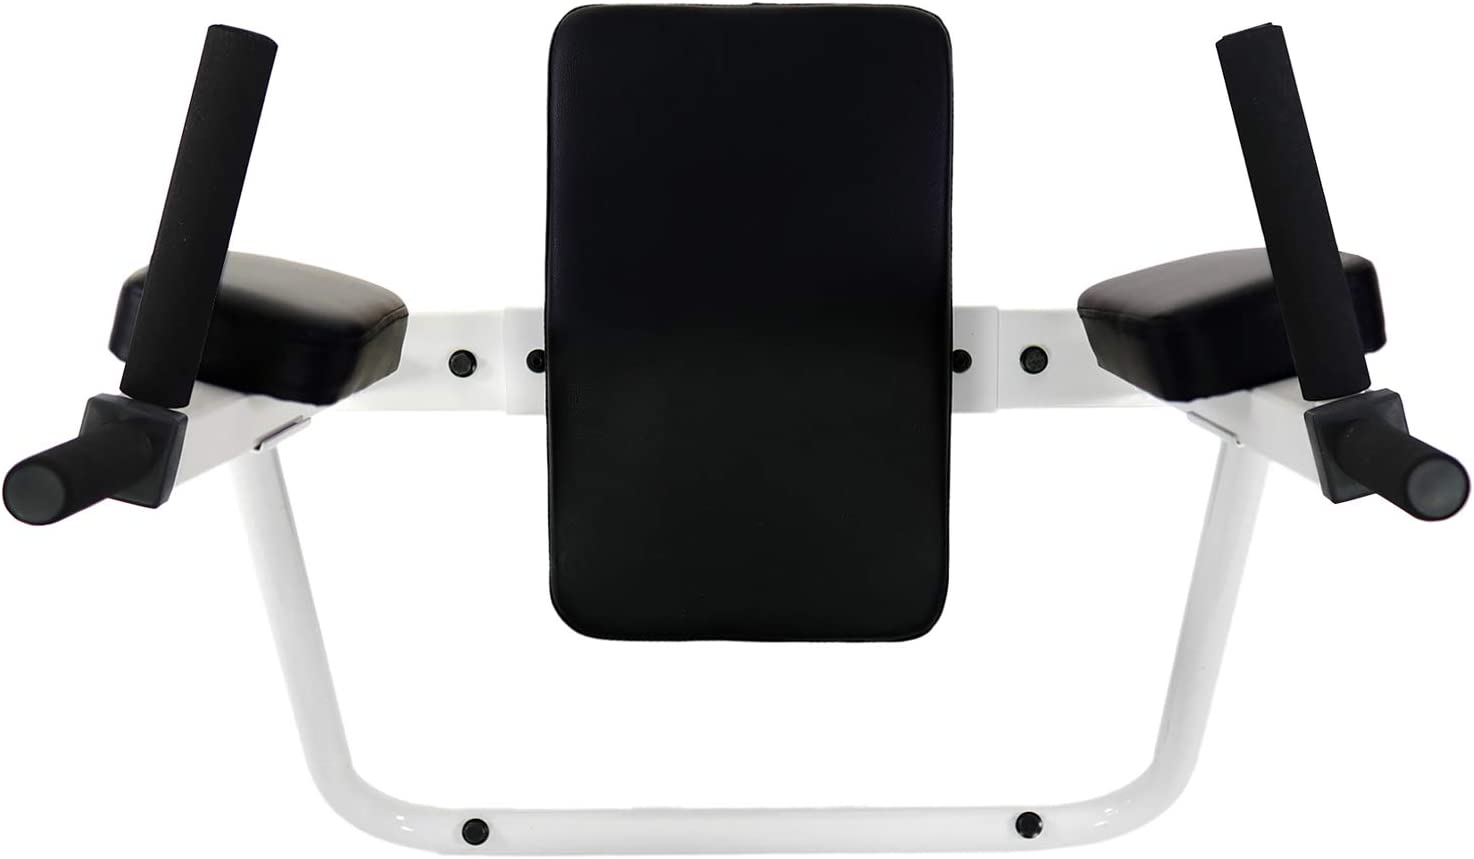 GYMANO ®WALL MOUNTED VKR /& DIP STATIONVERTICAL KNEE//LEG RAISE ABS /& TRICEP